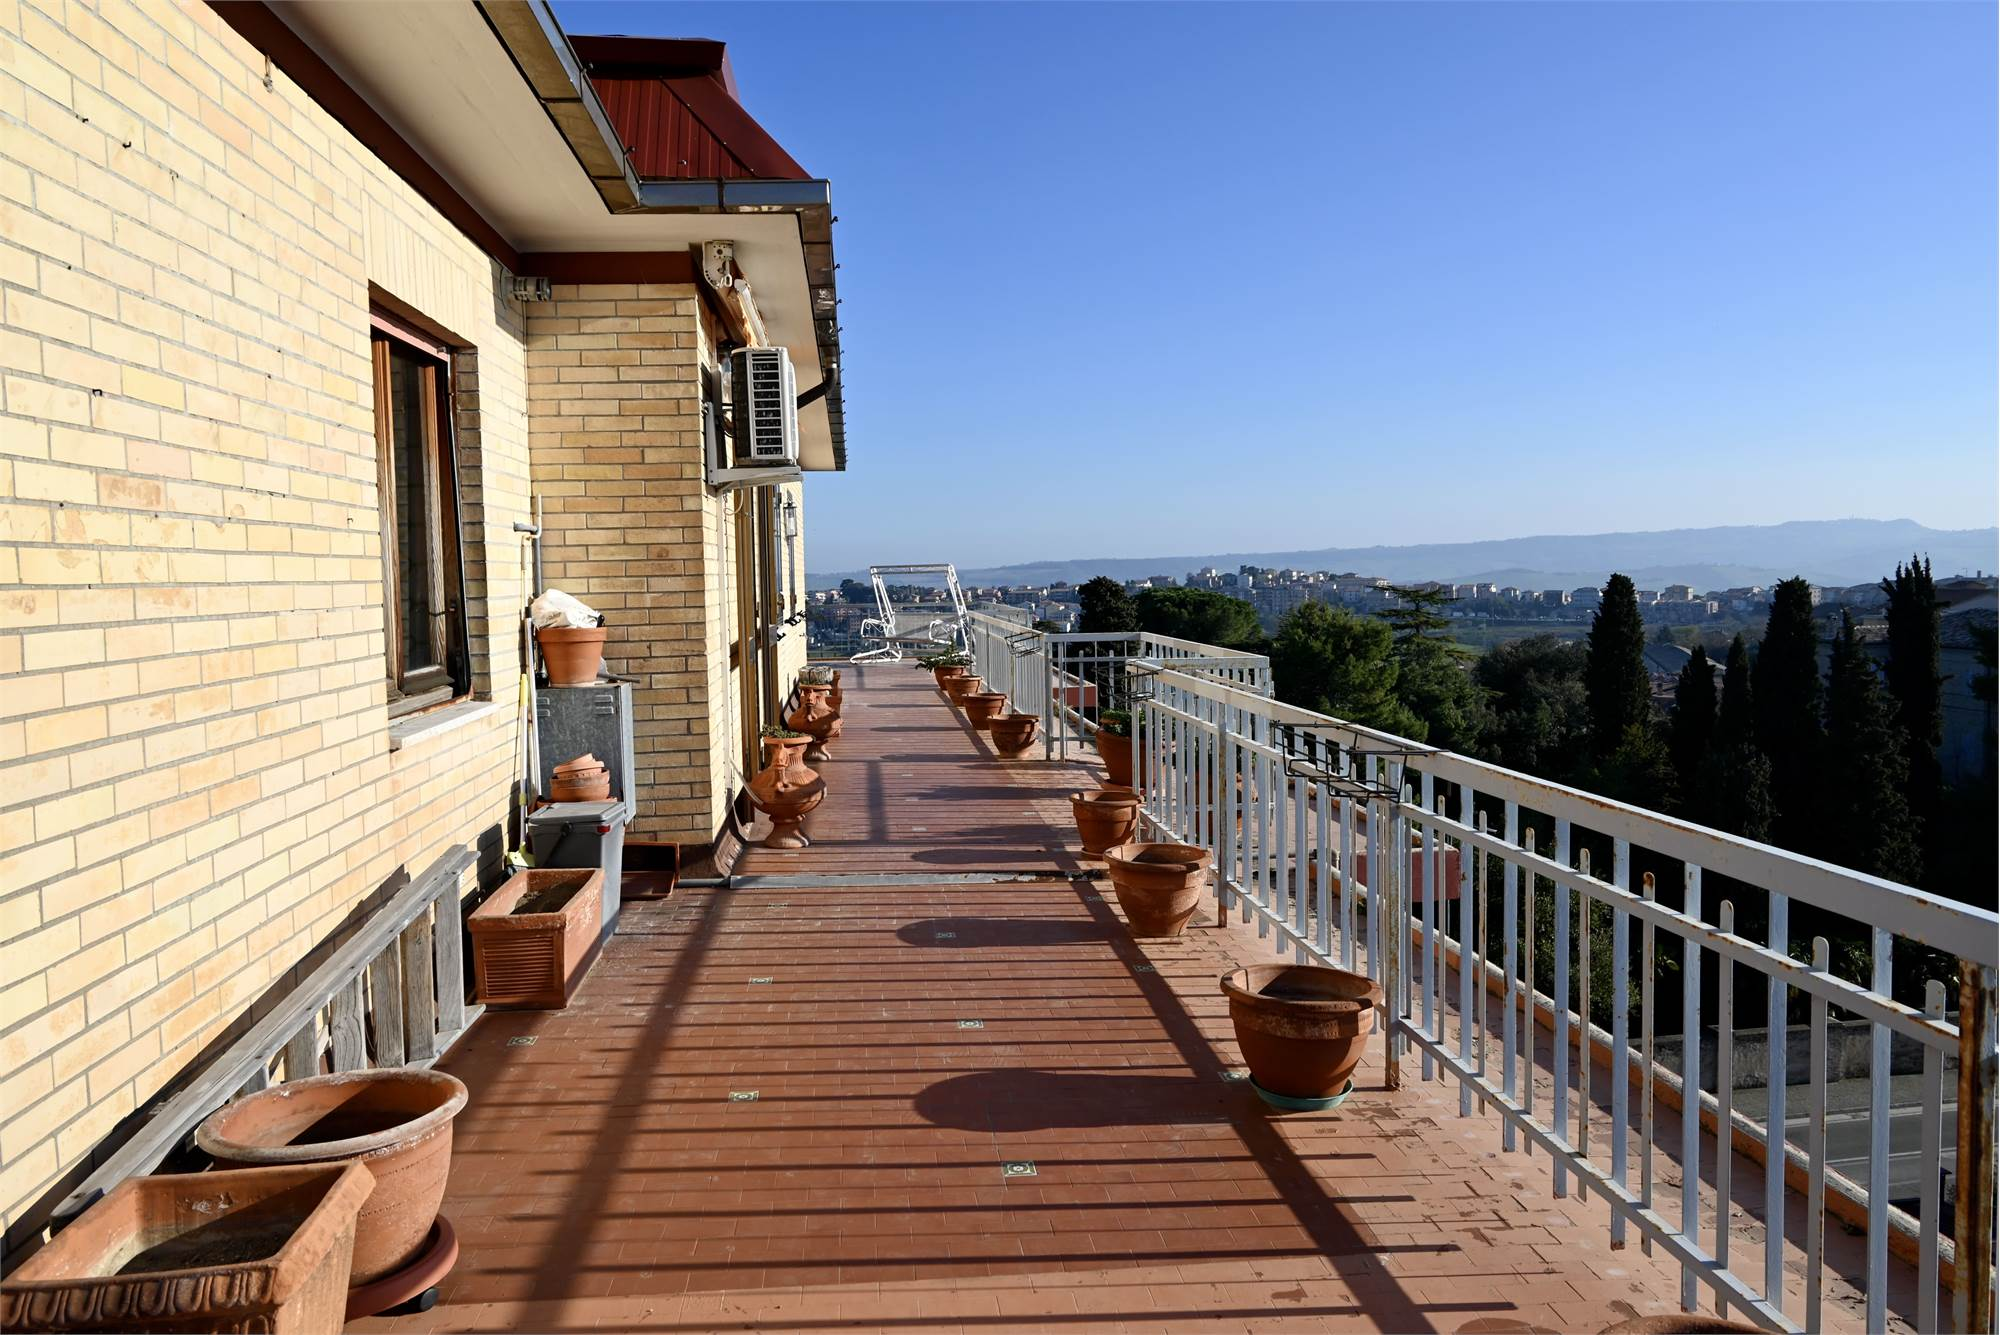 Property for sale Fermo - Marche - Italy